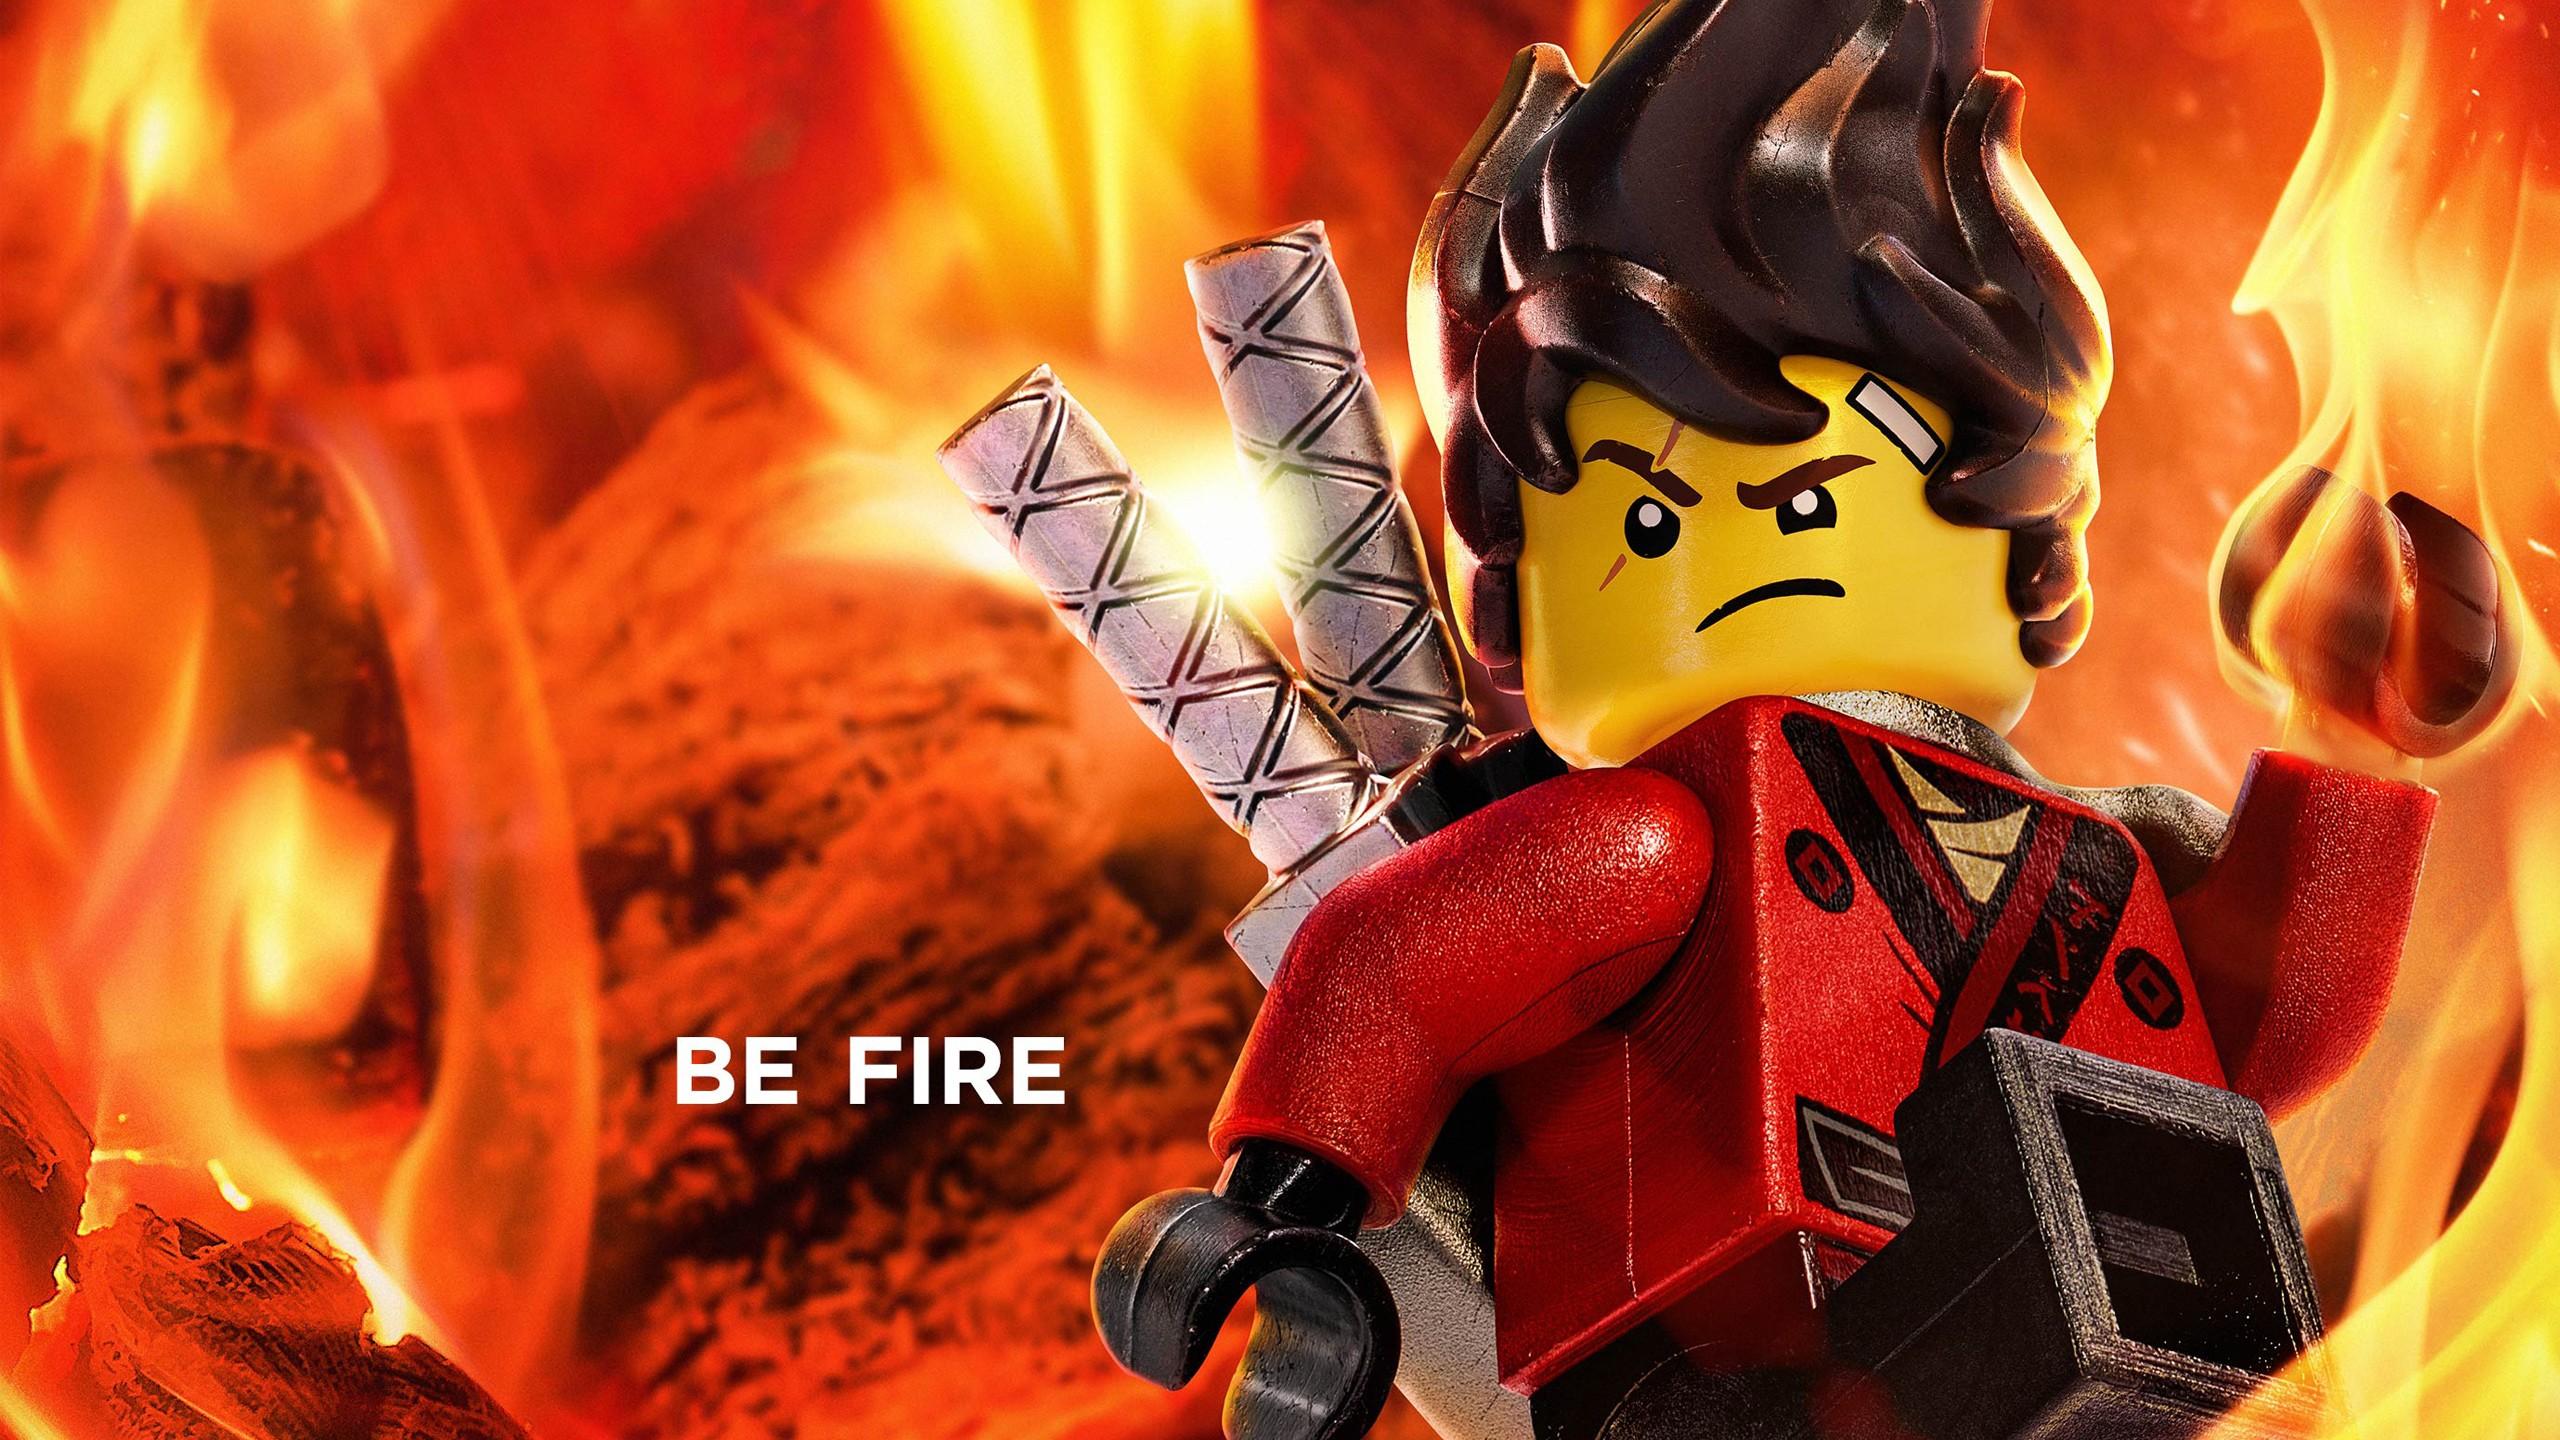 kai_be_fire_the_lego_ninjago_movie_2017-2560x1440 (1)